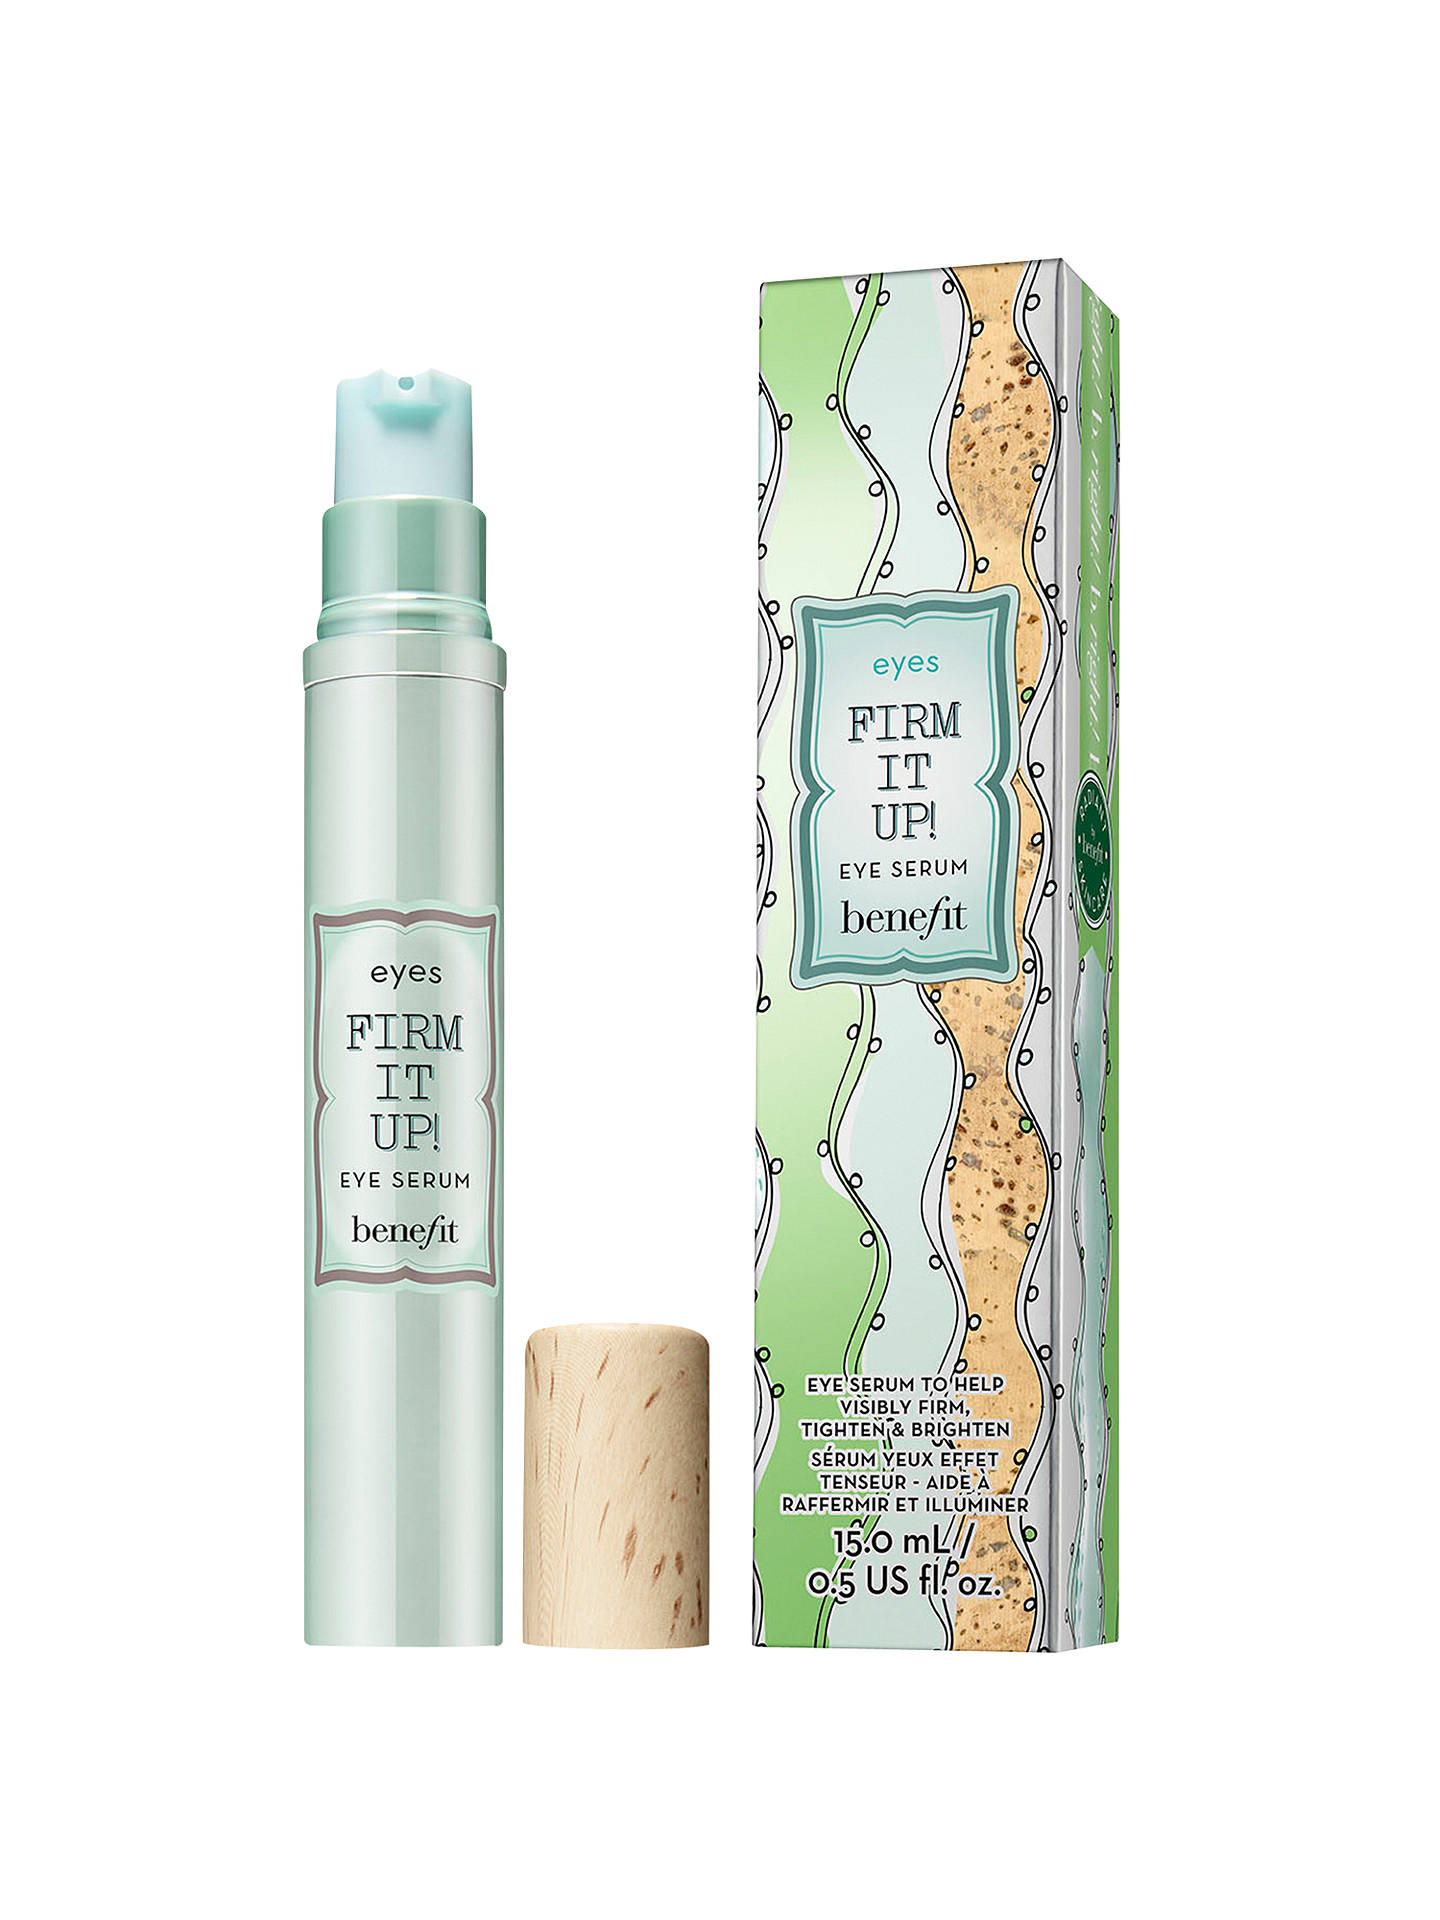 BuyBenefit Firm It Up! Eye Serum, 15ml Online at johnlewis.com